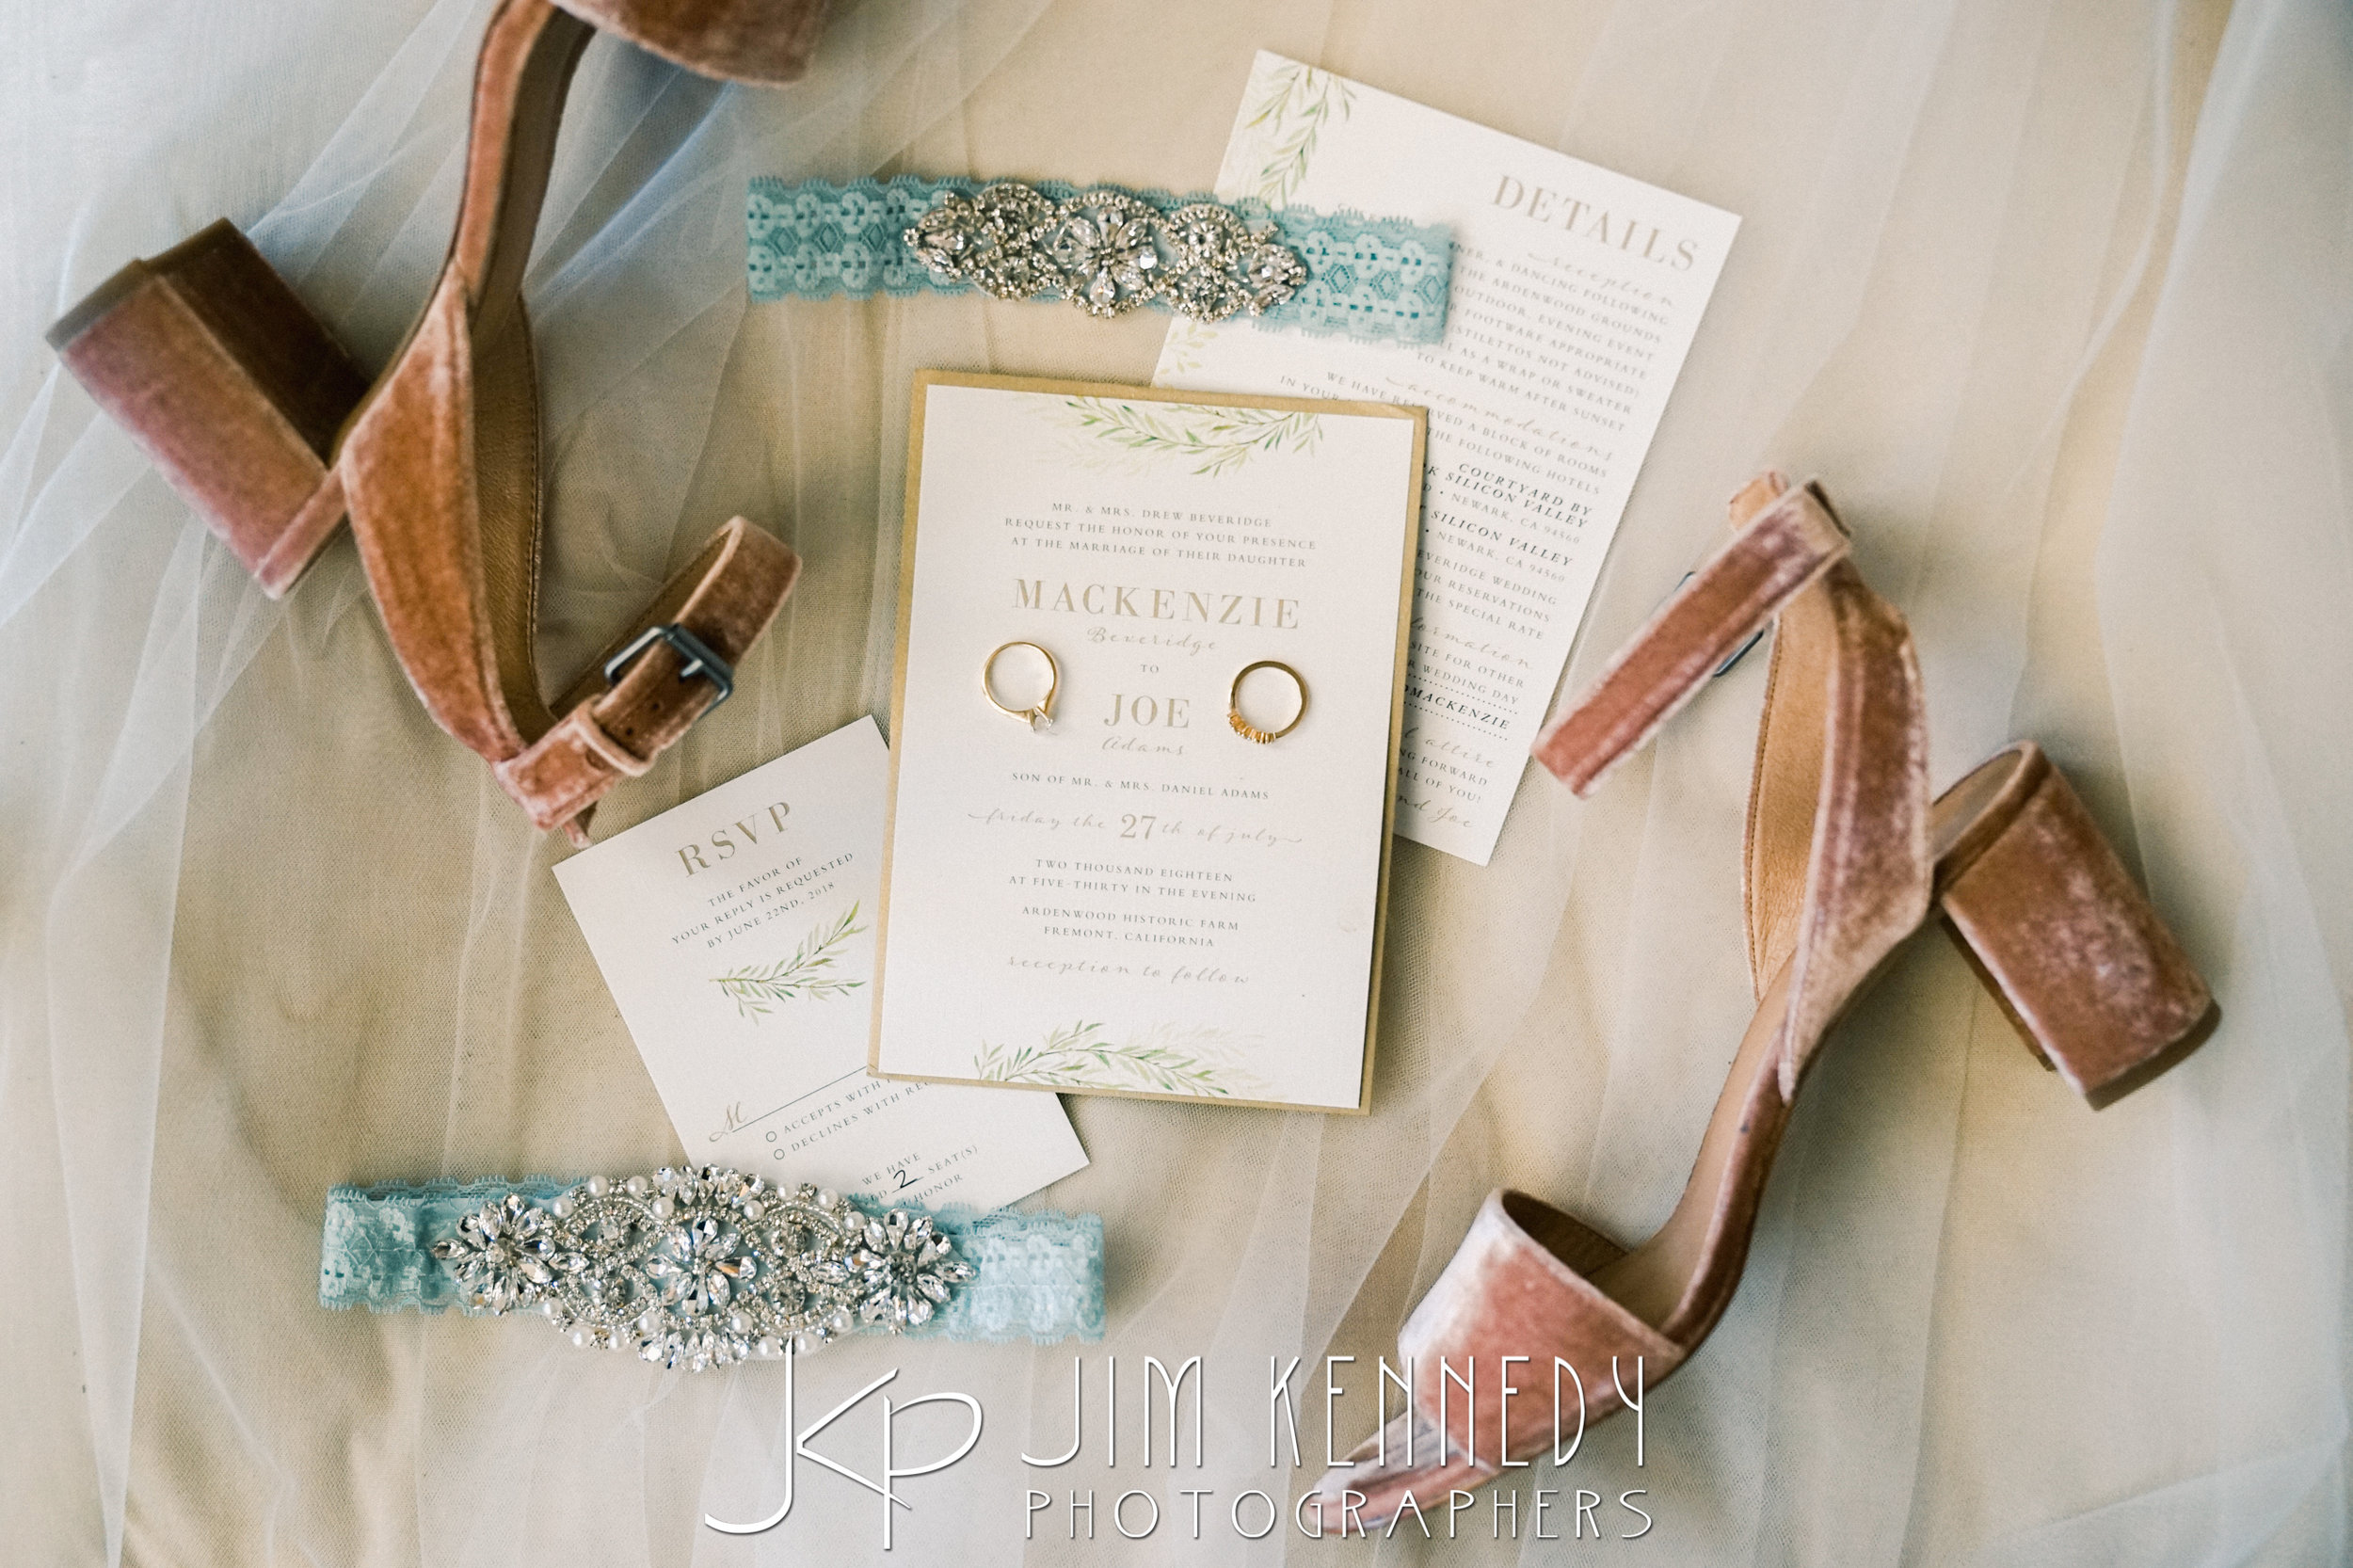 ardenwood-events-wedding-mackenzie_007.JPG